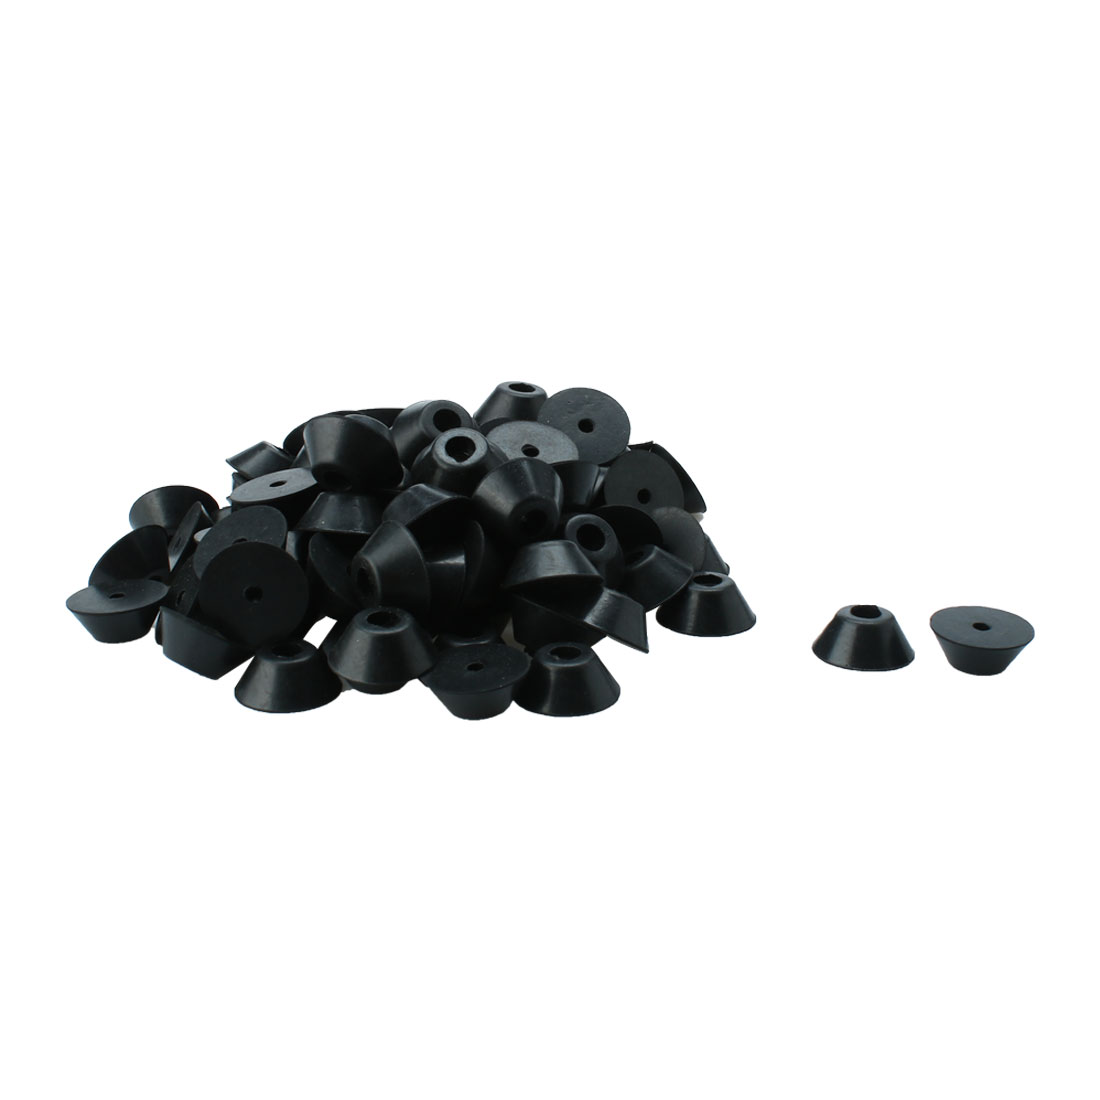 "100 Pcs Conical Rubber Furniture Feet Protector Chair Leg Tips Covers Black 0.28"" High"